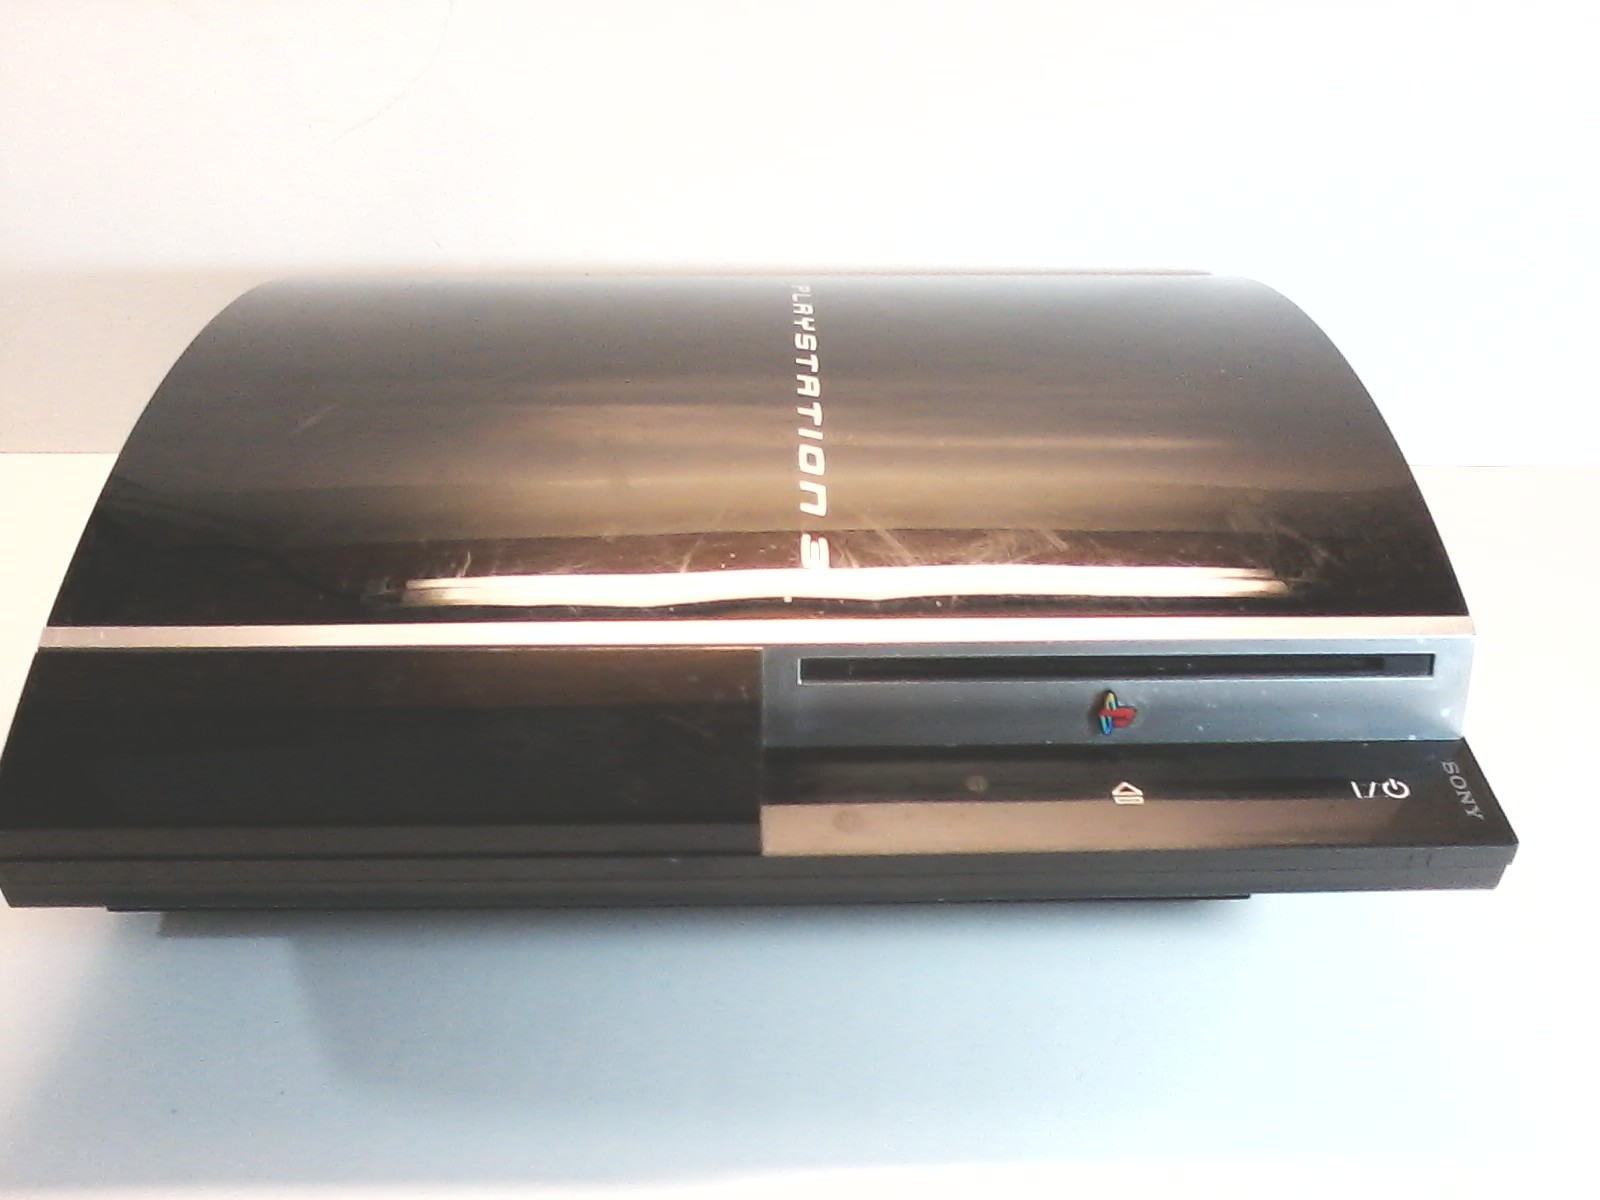 Sony Playstation 3 PS3 Console for Parts or Repair Flashing Red Light CECHH01